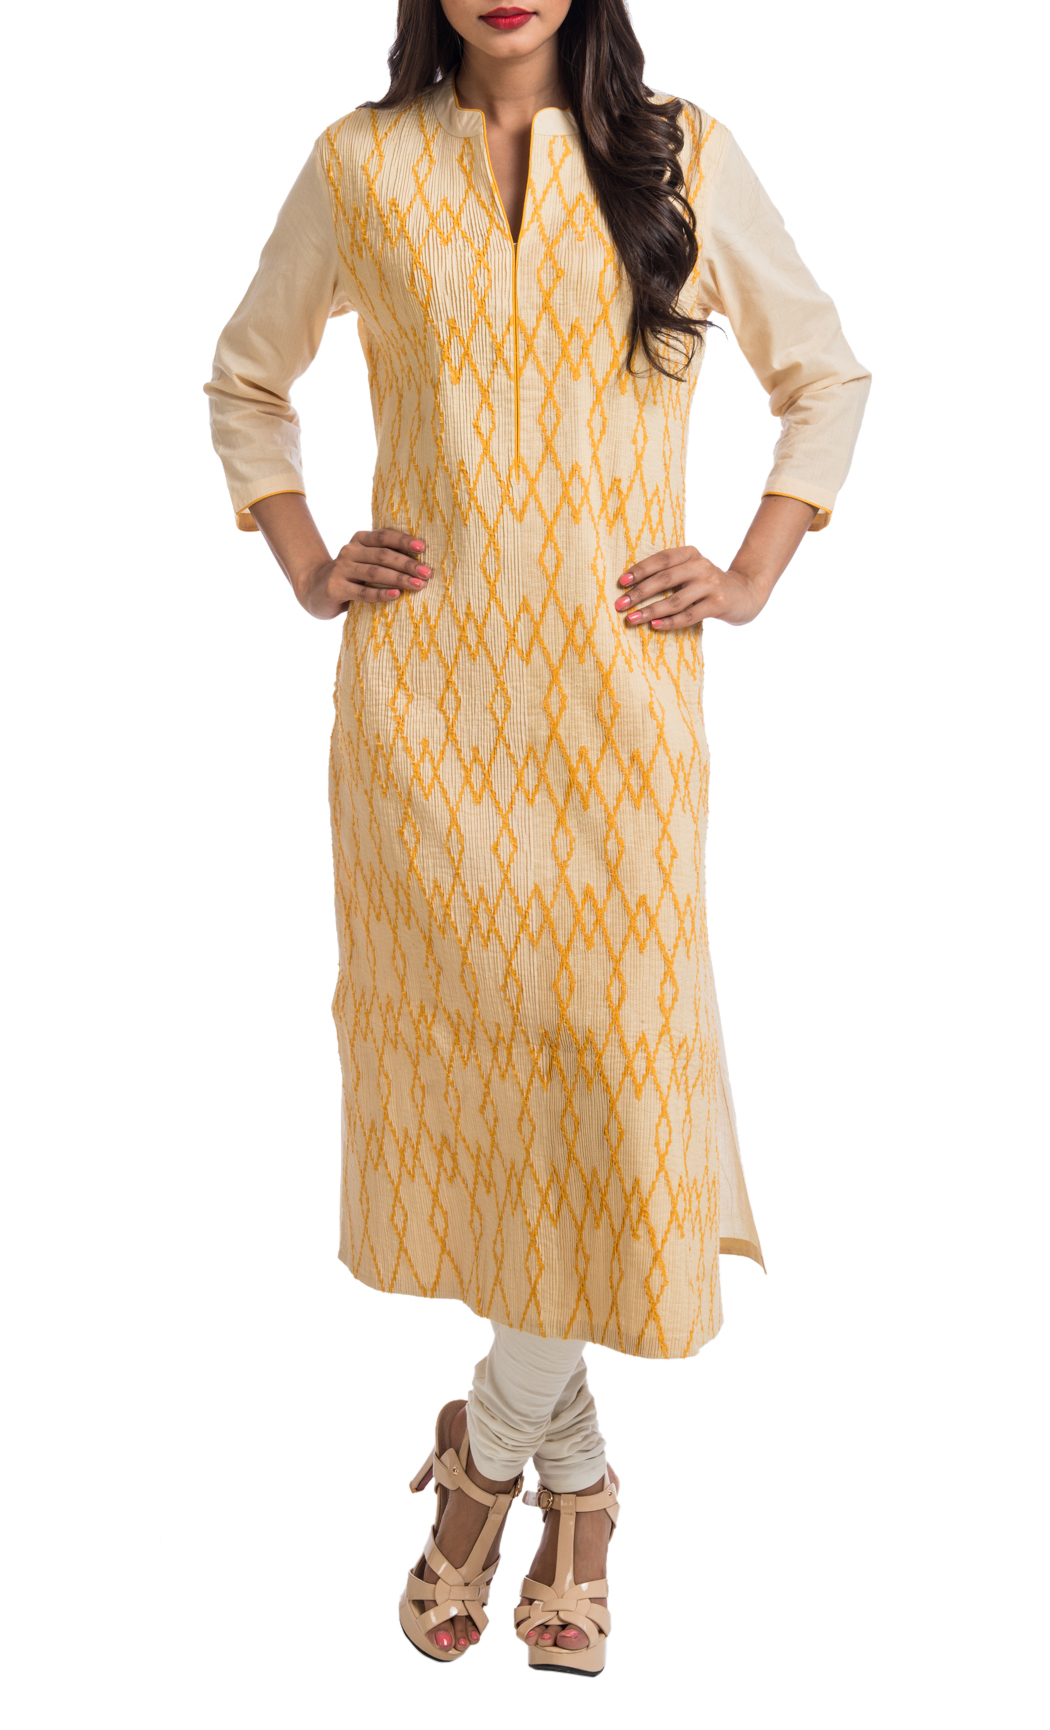 Beige and Mango Geometric Appliqued Pintuck Tunic - Shop Now